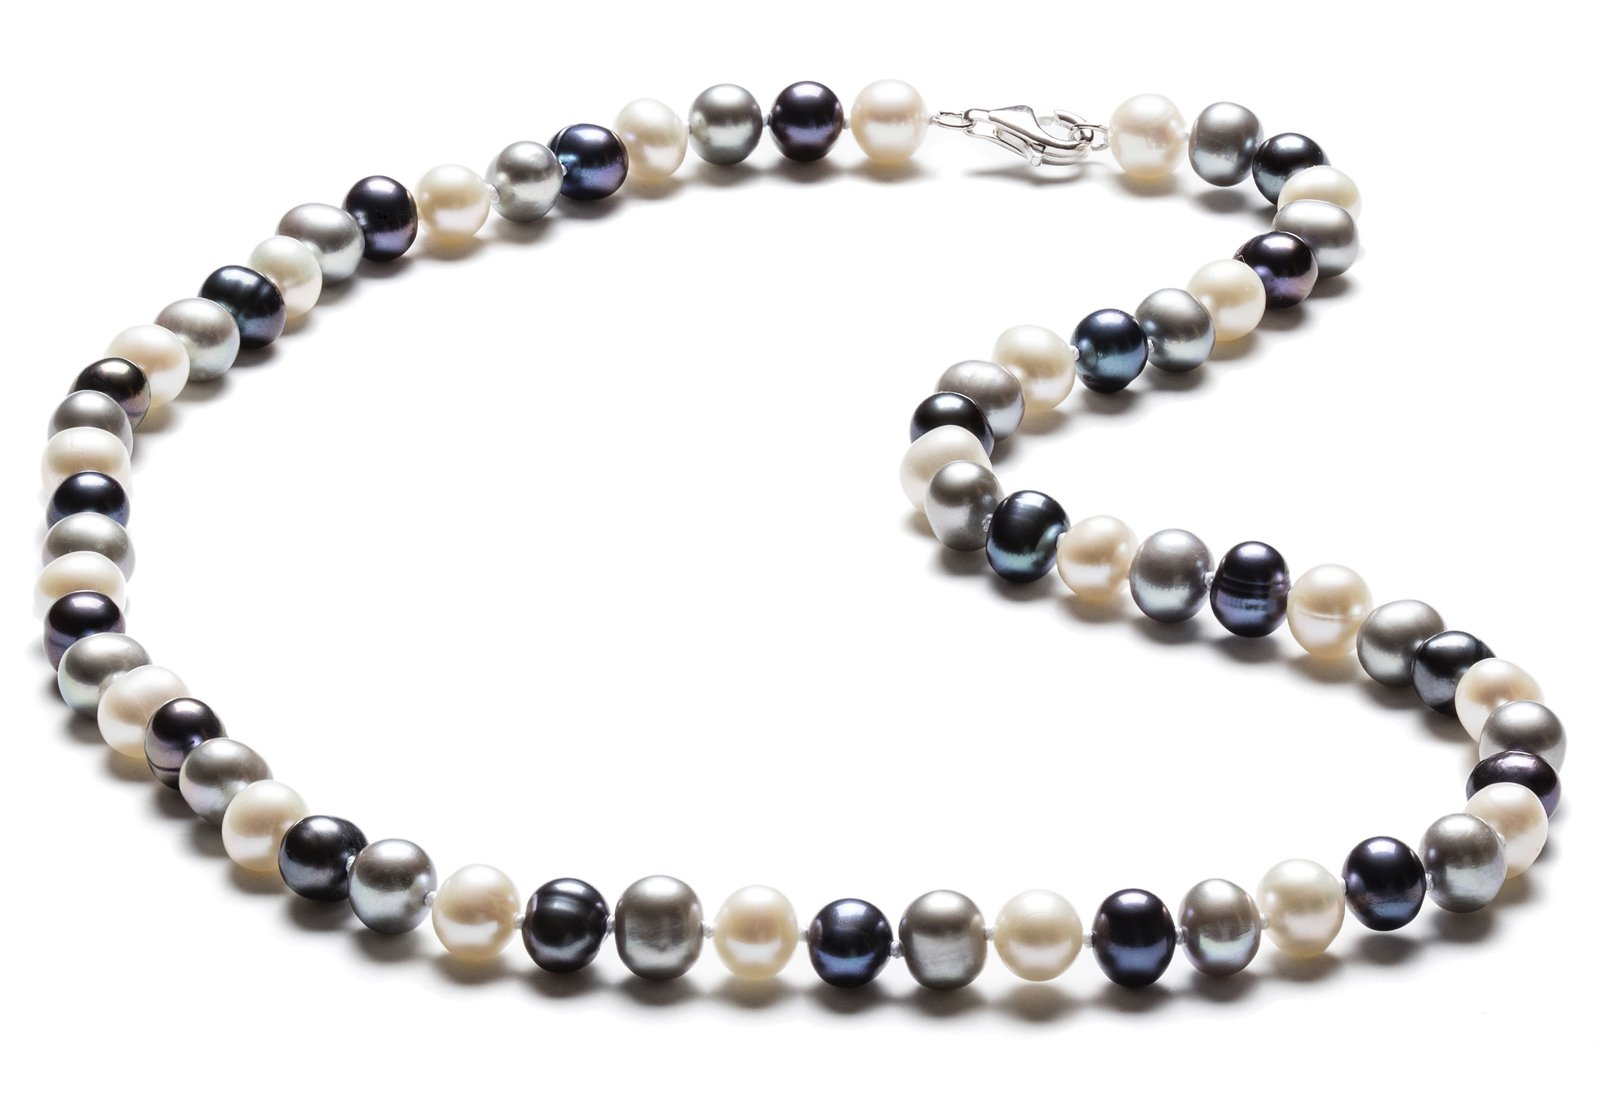 SilverLuxe Sterling Silver Genuine Freshwater Pearl Necklace 6-7mm Greys 18''